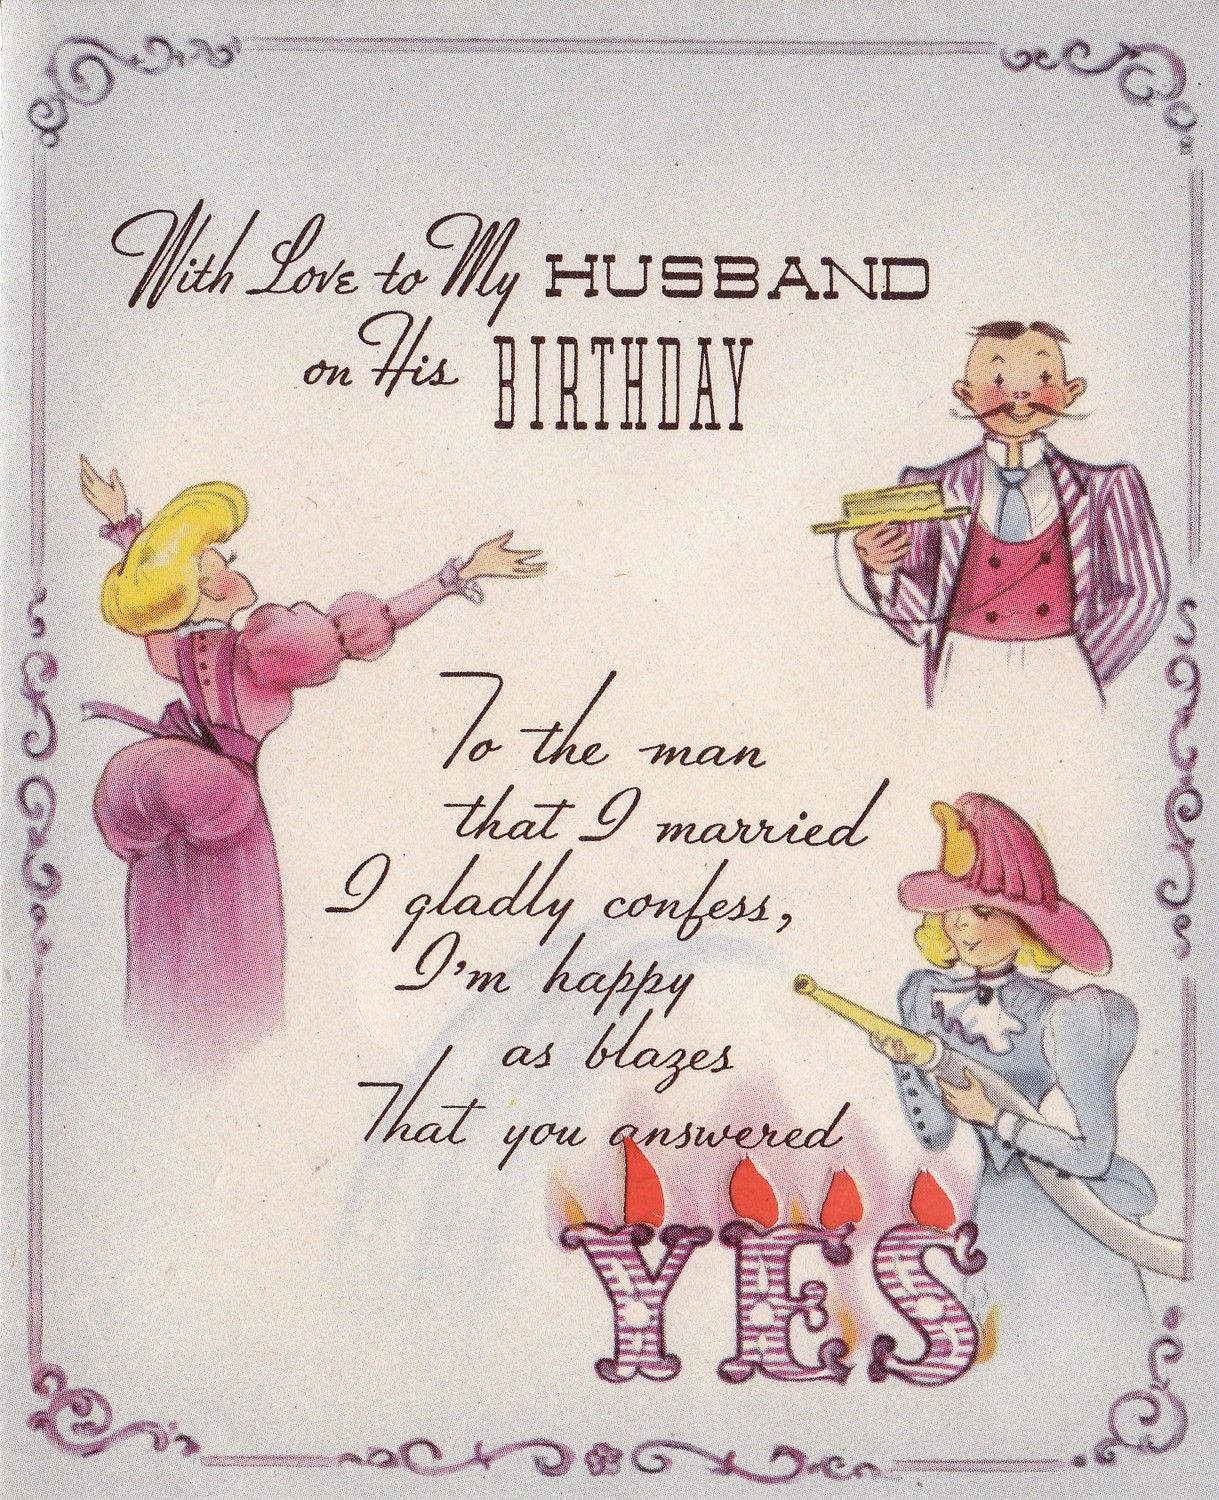 Vintage 1950s With Love To My Husband On His Birthday Greetings Card